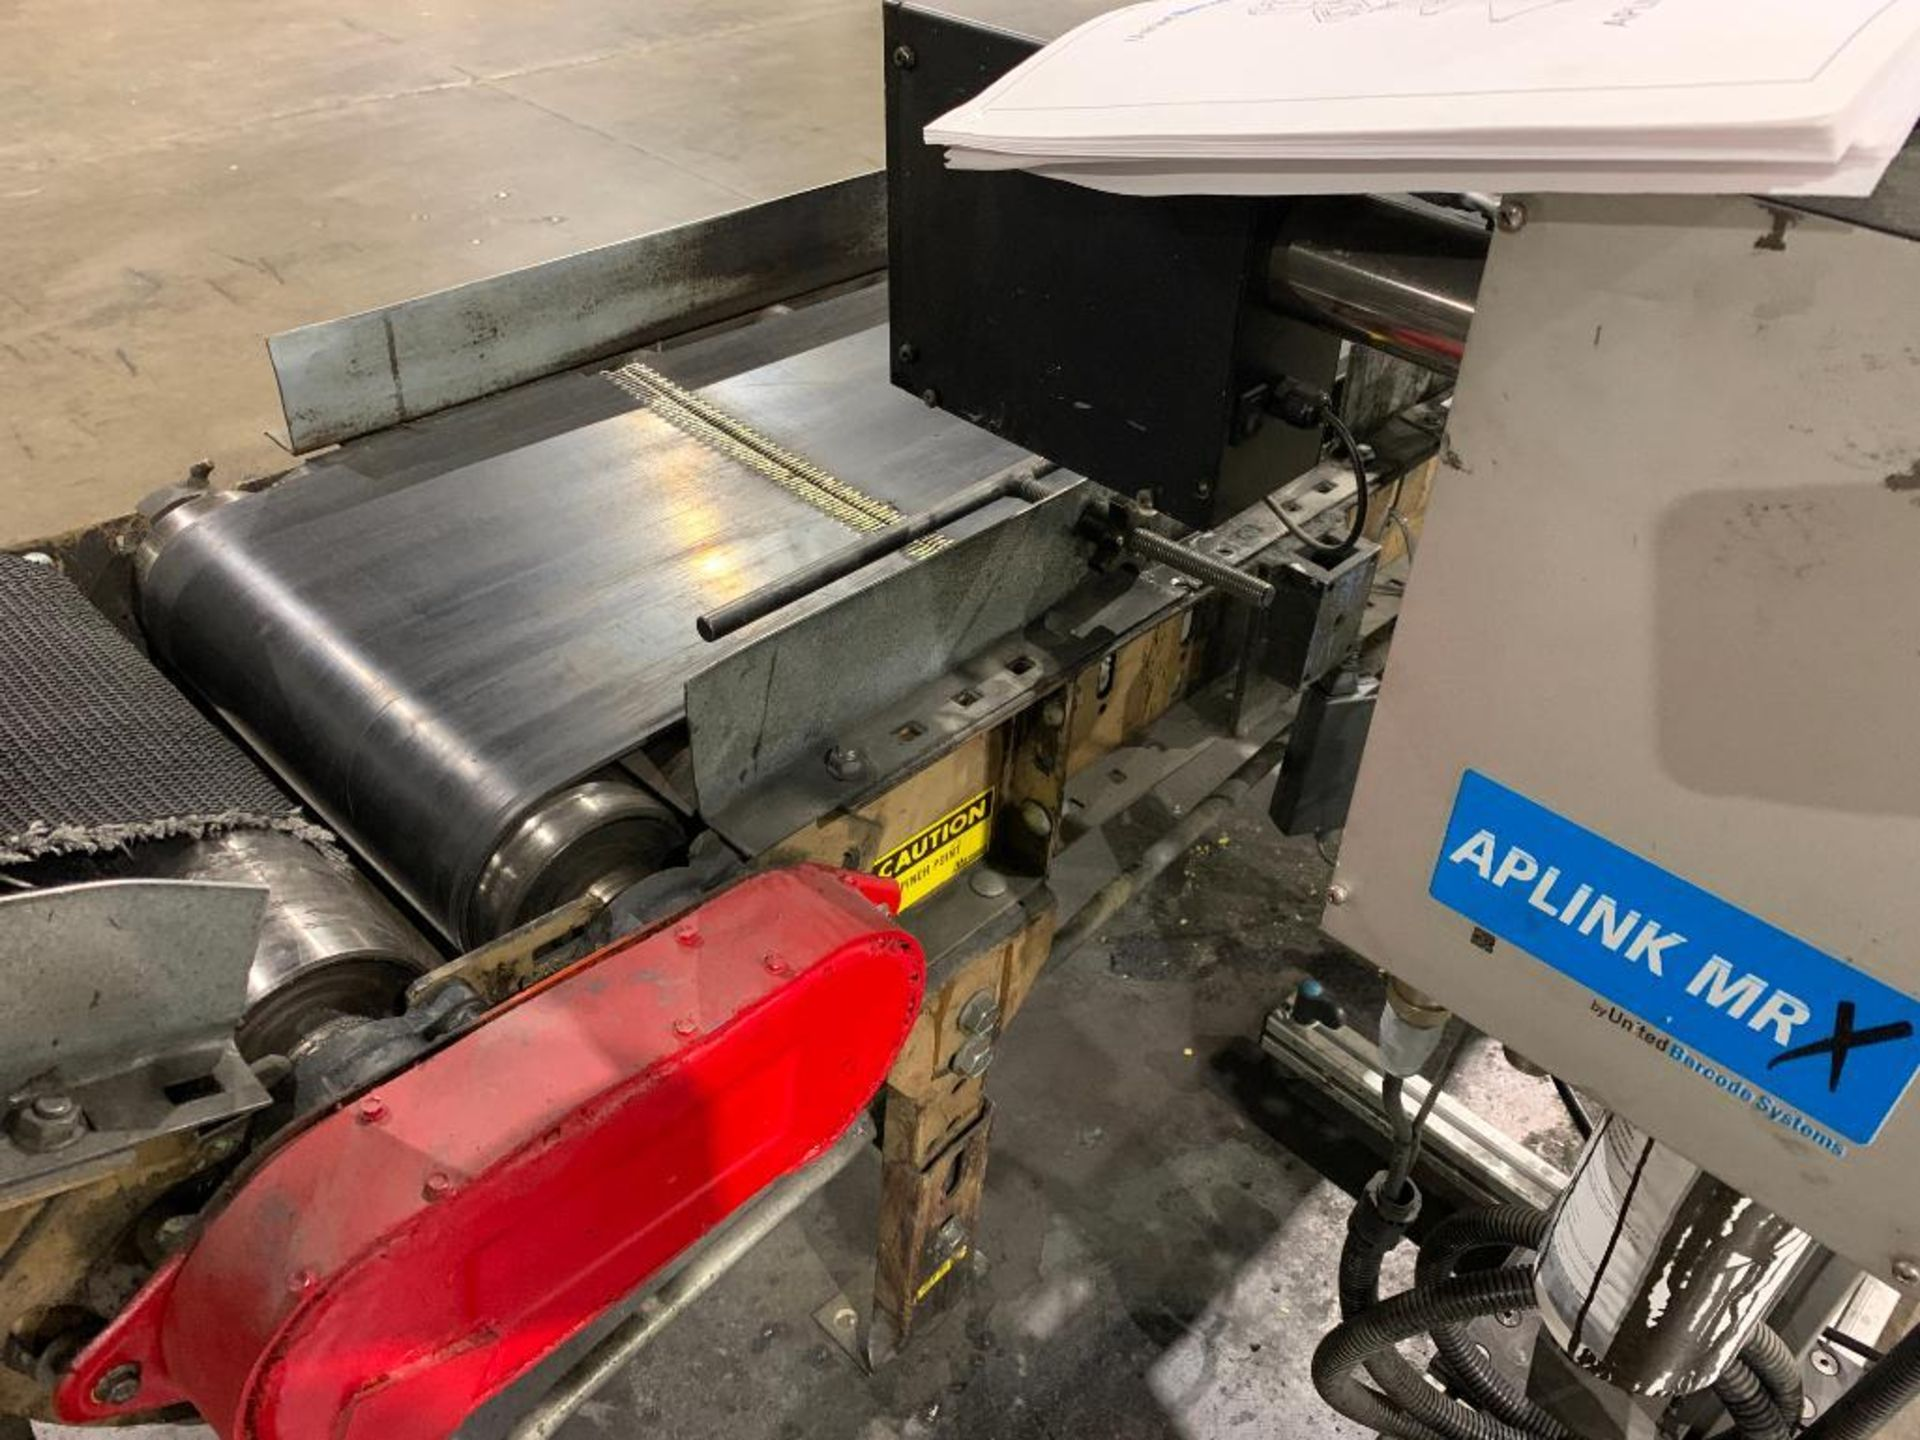 Automatic Printing Systems case coder - Image 12 of 13